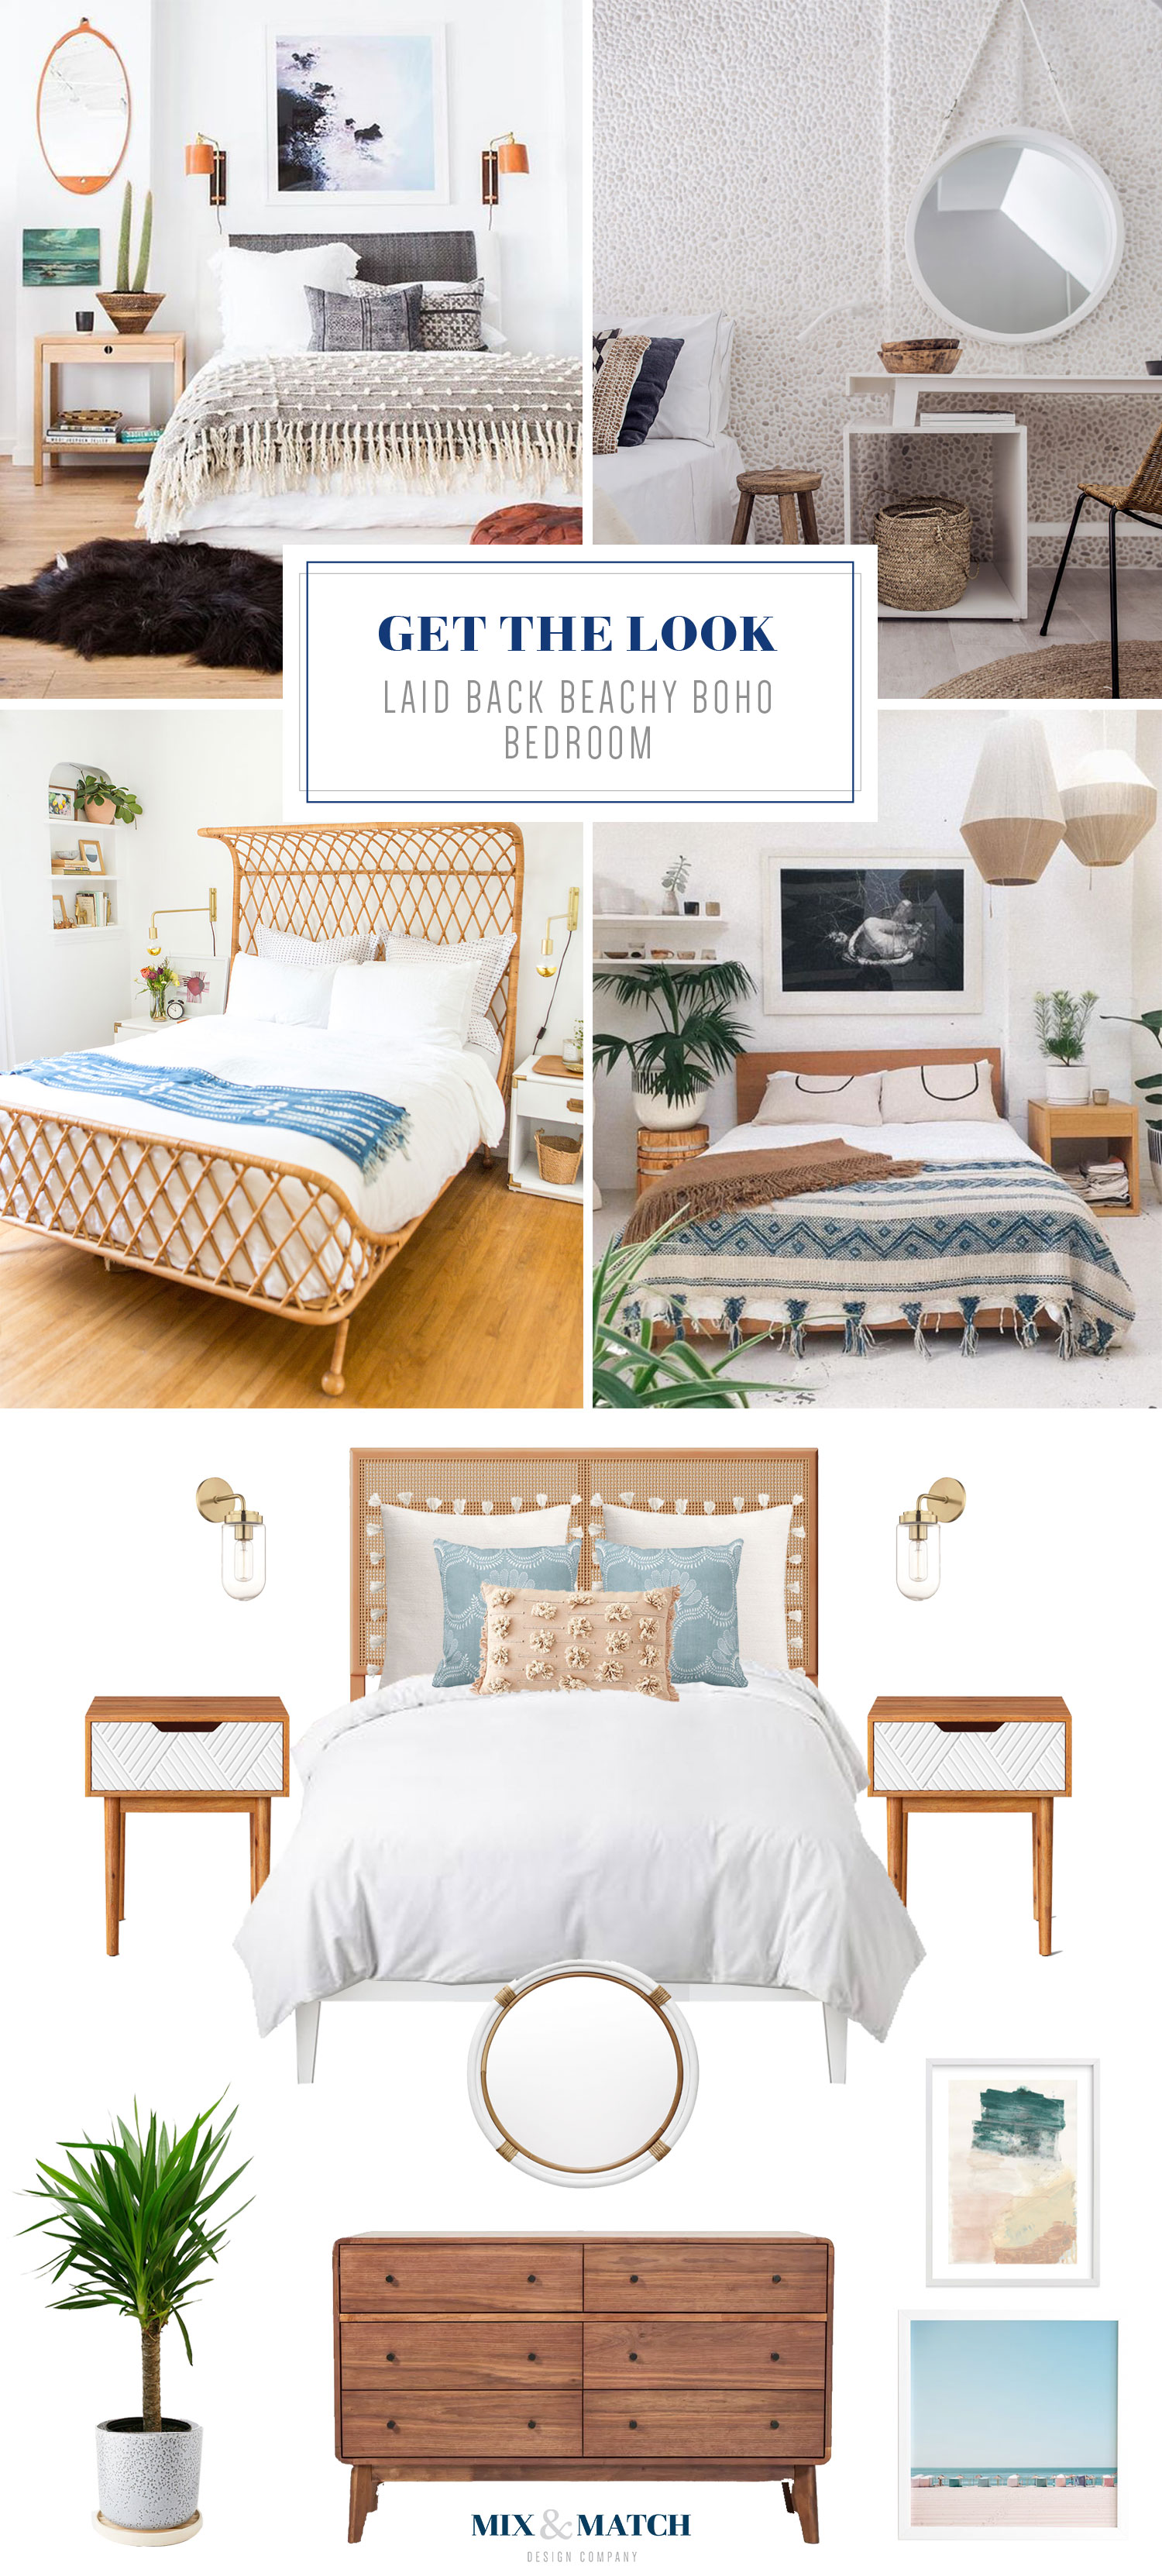 A beachy, laid back boho-inspired bedroom look from Mix & Match Design Company. I'm loving the use of textures, the light and airy feel, and the natural wood elements mixed with soft colors.